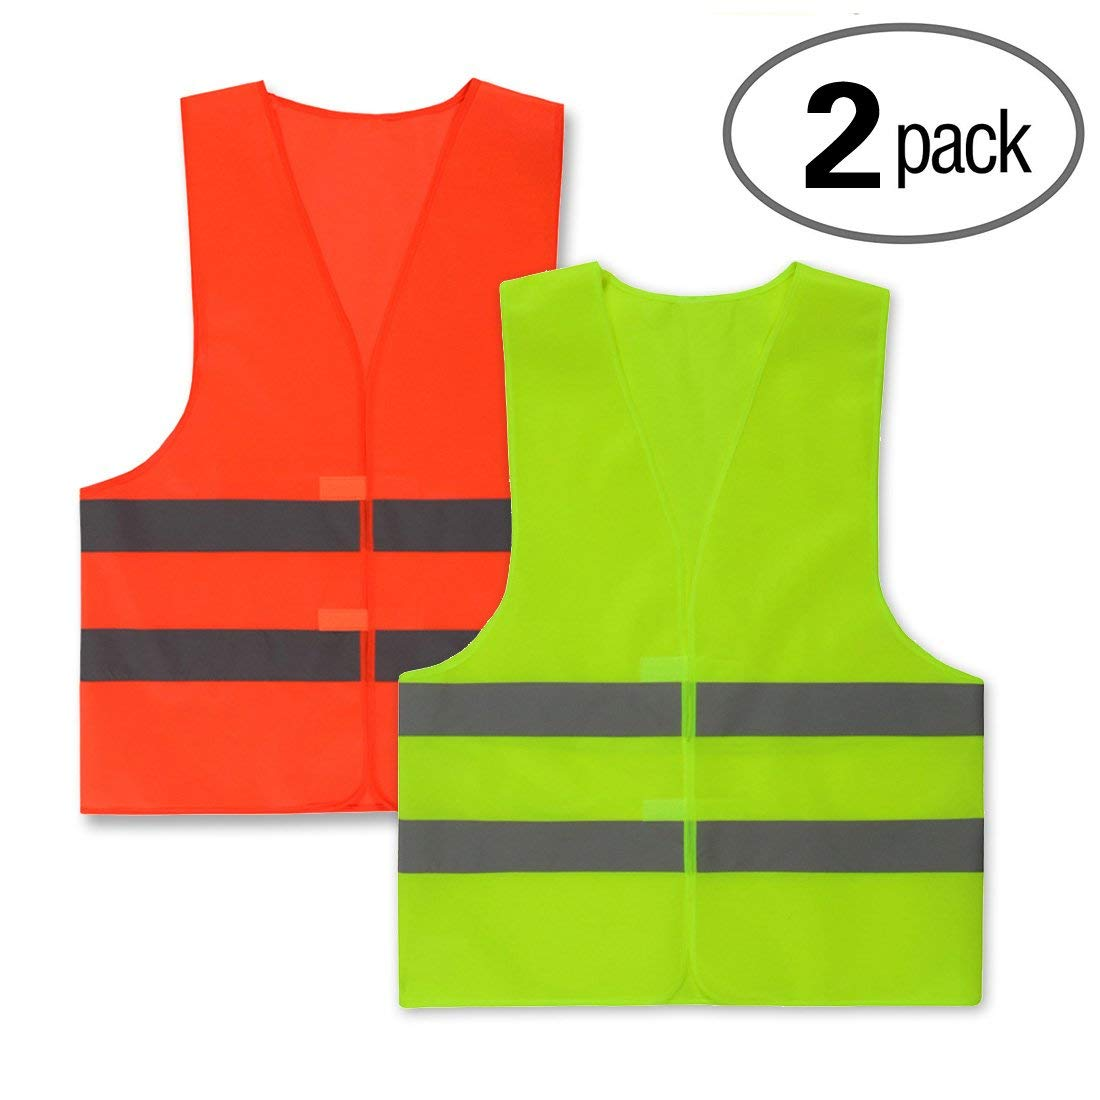 Security & Protection Pvc Reflective Tape Safety Reflective Vest Highways Sanitation Reflective Mesh Vests